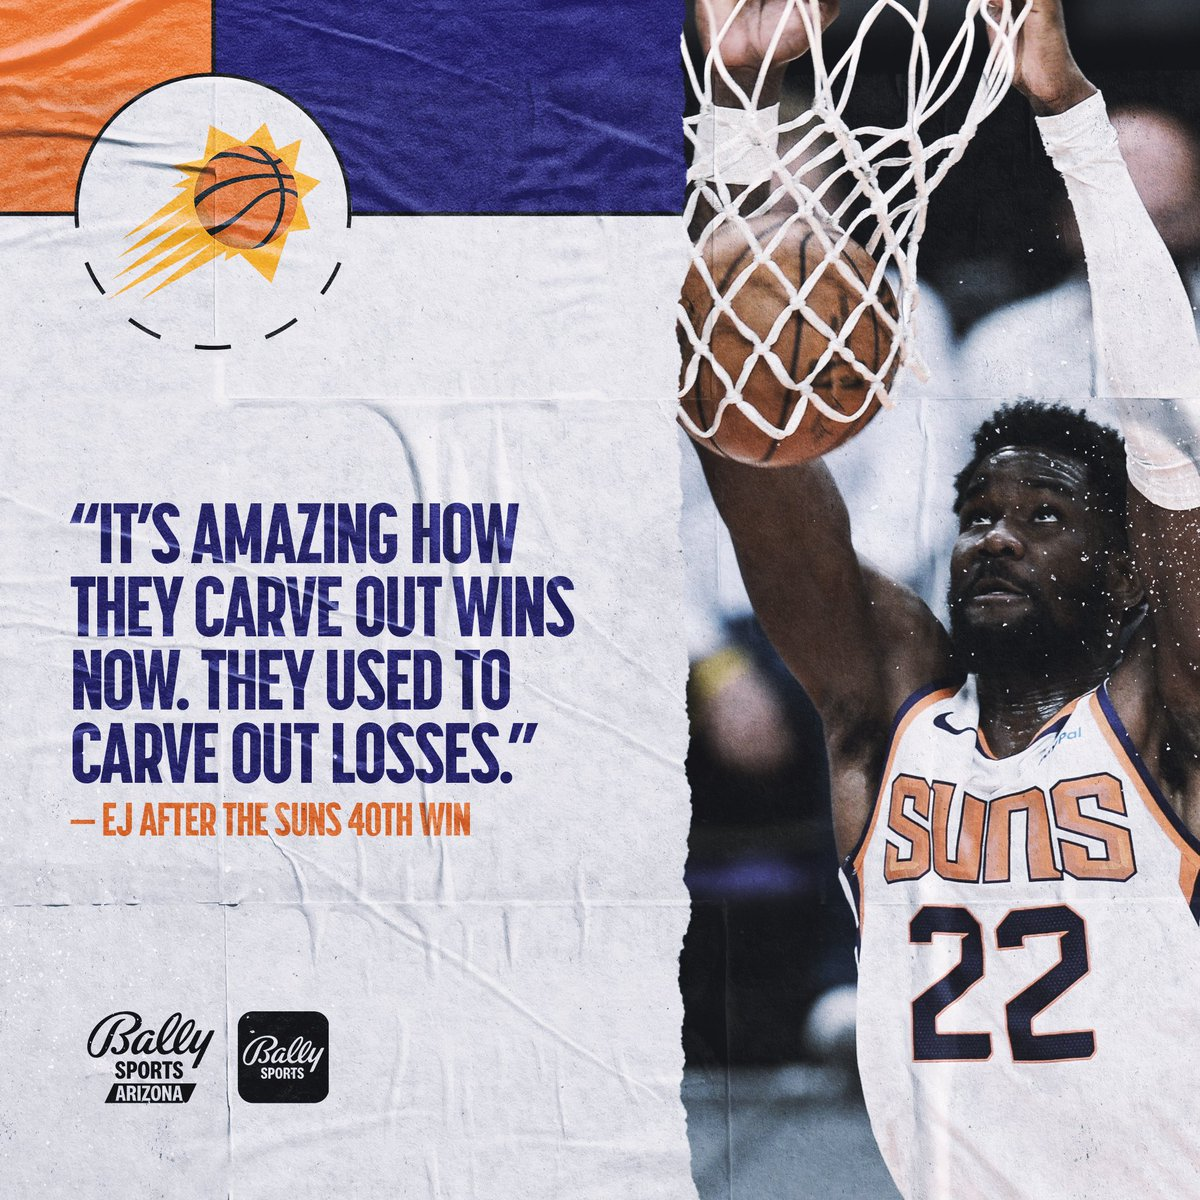 Feels good to win 40 games again.  @Jumpshot8 with the perfect synopsis. https://t.co/cJsj4Jg0KQ